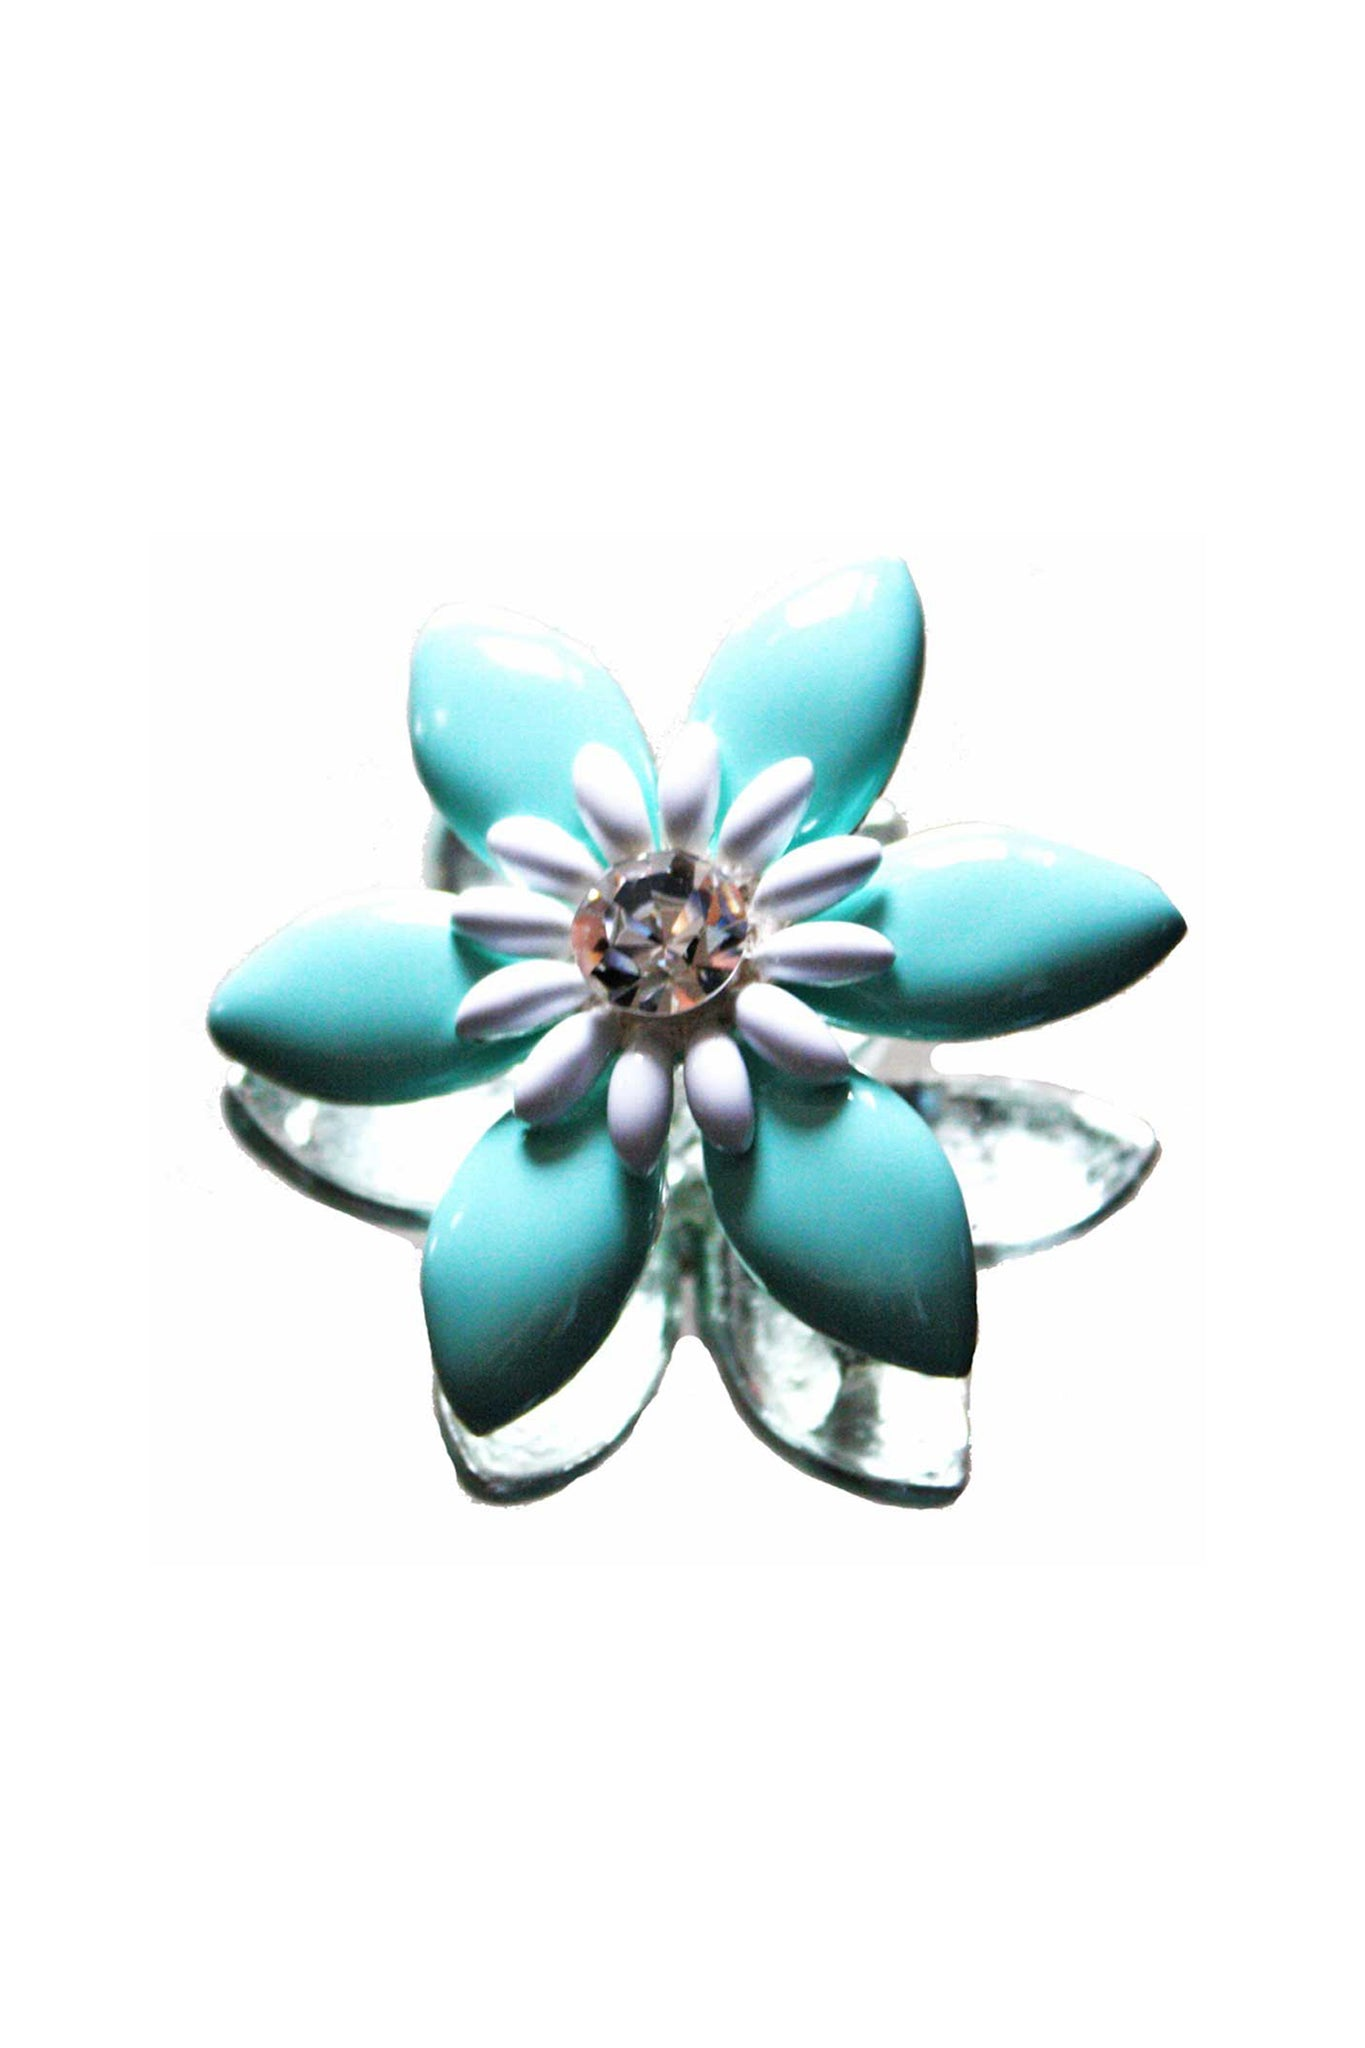 Vintage daisy shaped brooch - SoLovesVintage